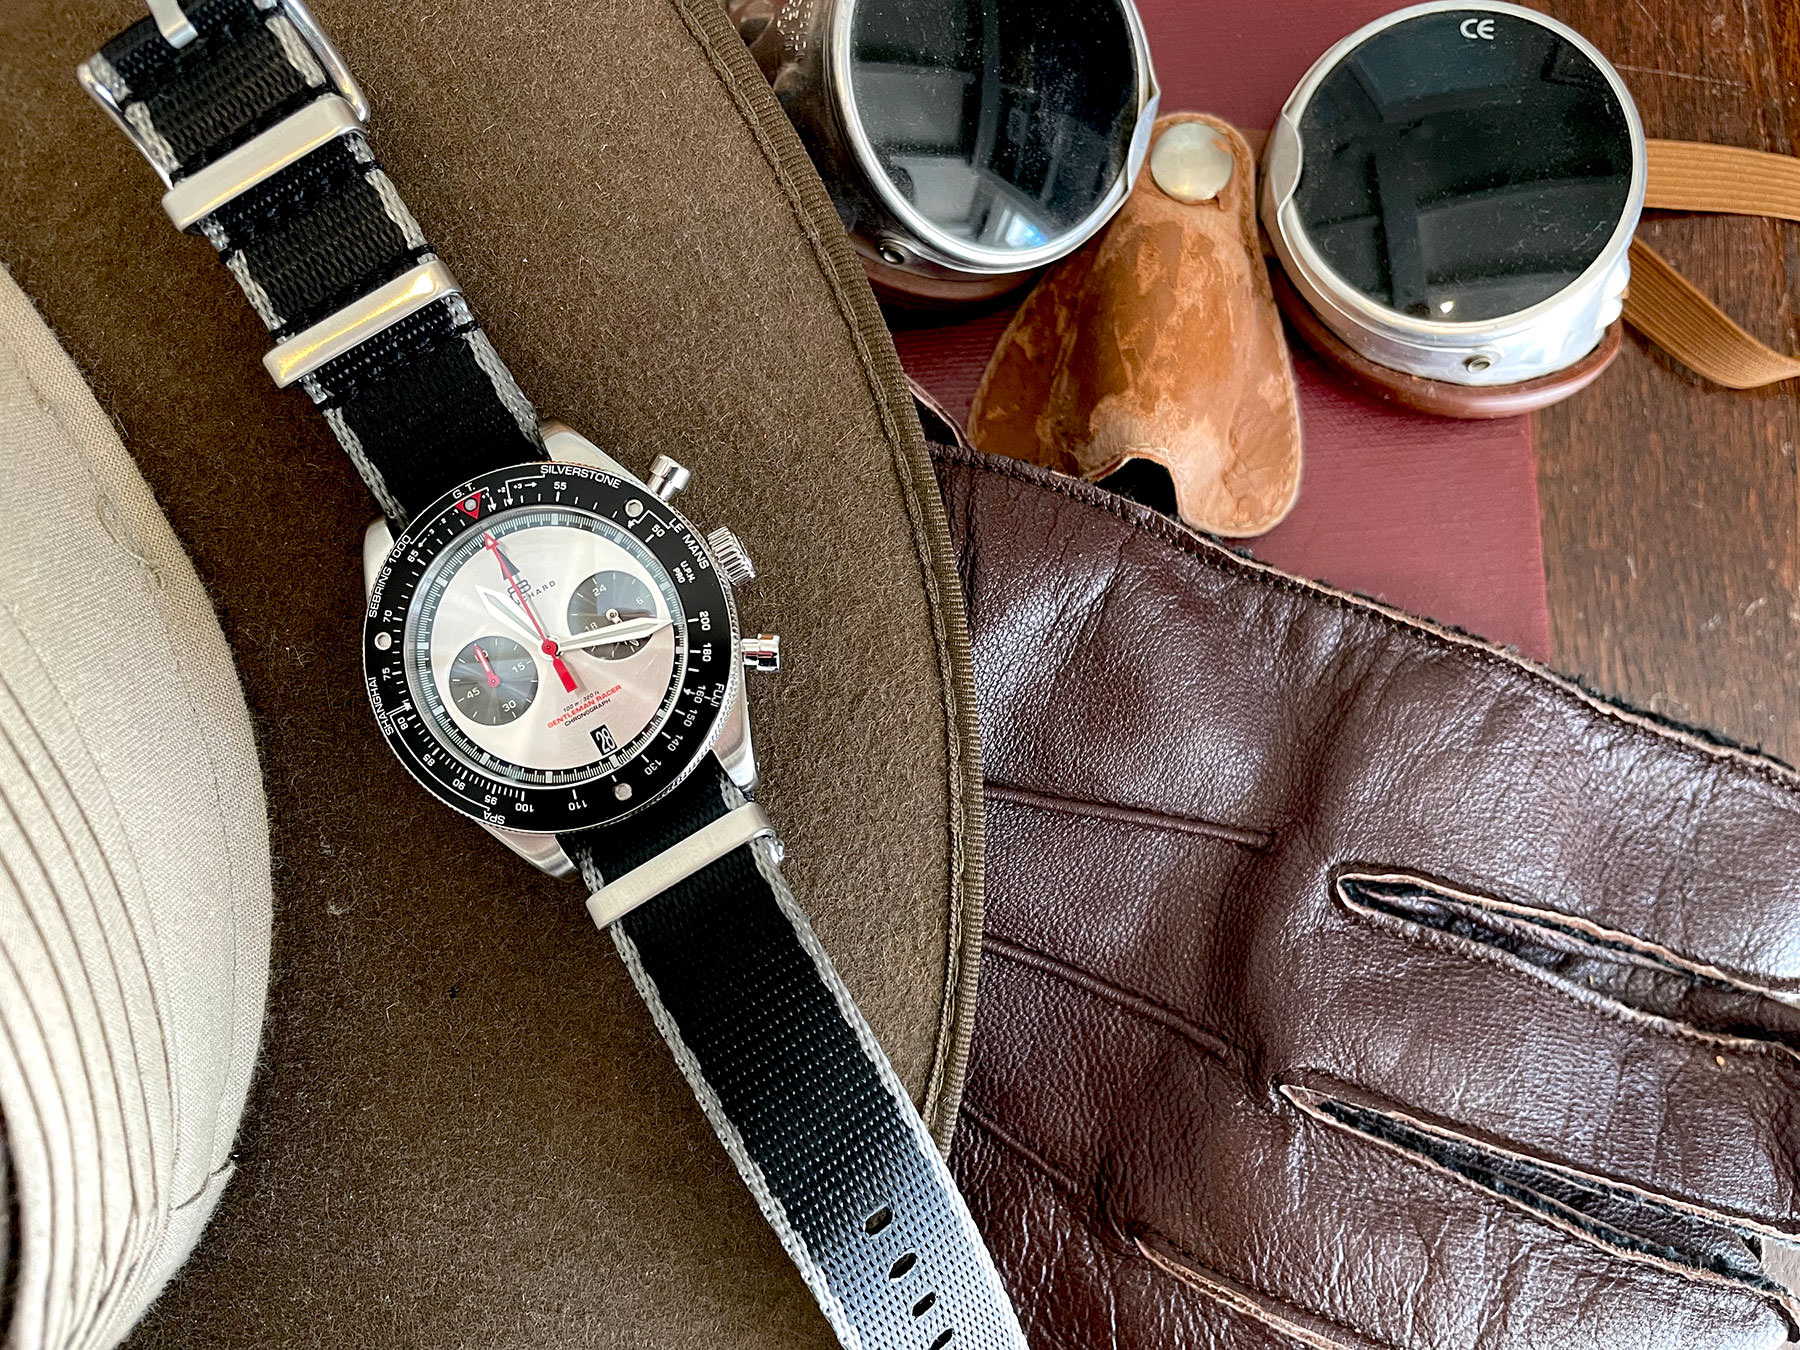 The Gentleman Racer by Blanchard Watch Company